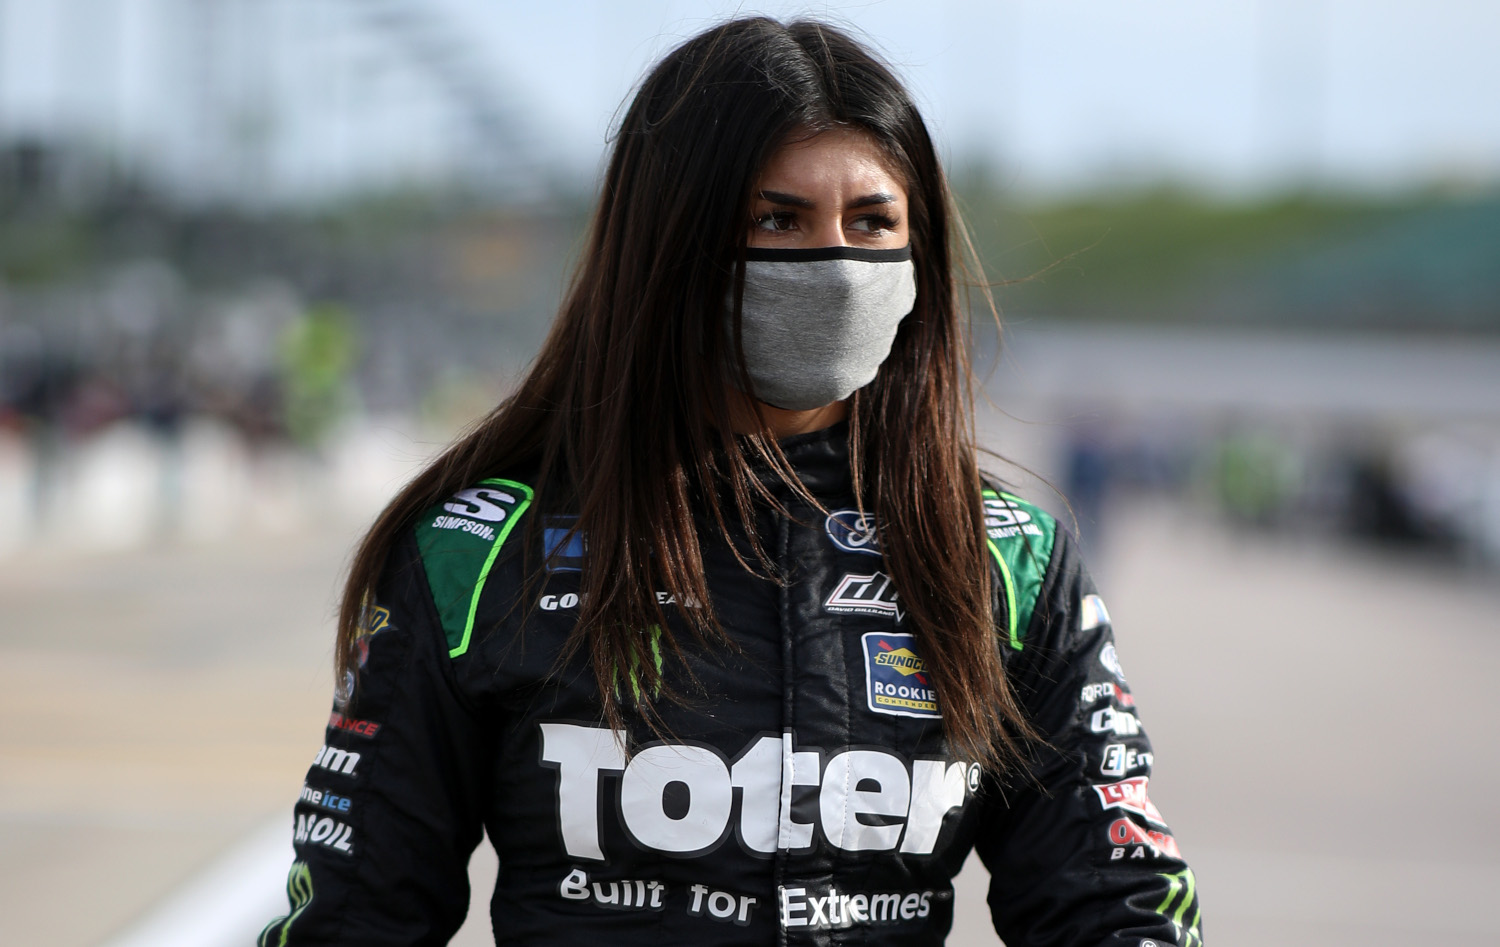 Hailie Deegan Says Her Racing Career Has Been 'More Rough and Edgy' Than Danica Patrick's